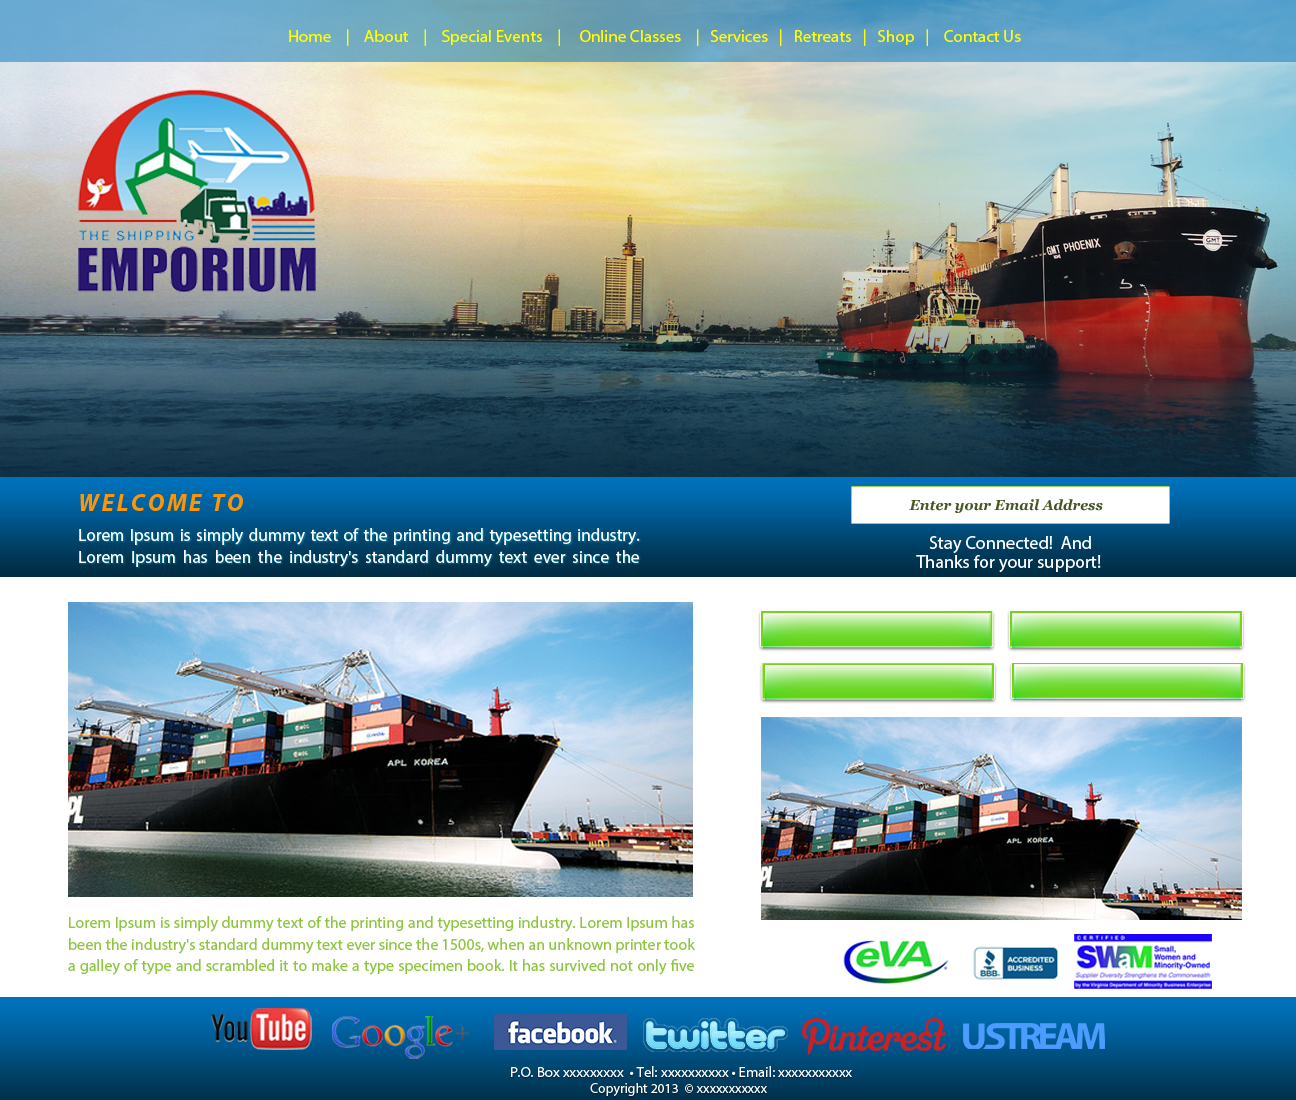 Web Page Design by zesthar - Entry No. 77 in the Web Page Design Contest Artistic Web Page Design for The Shipping Emporium Website.